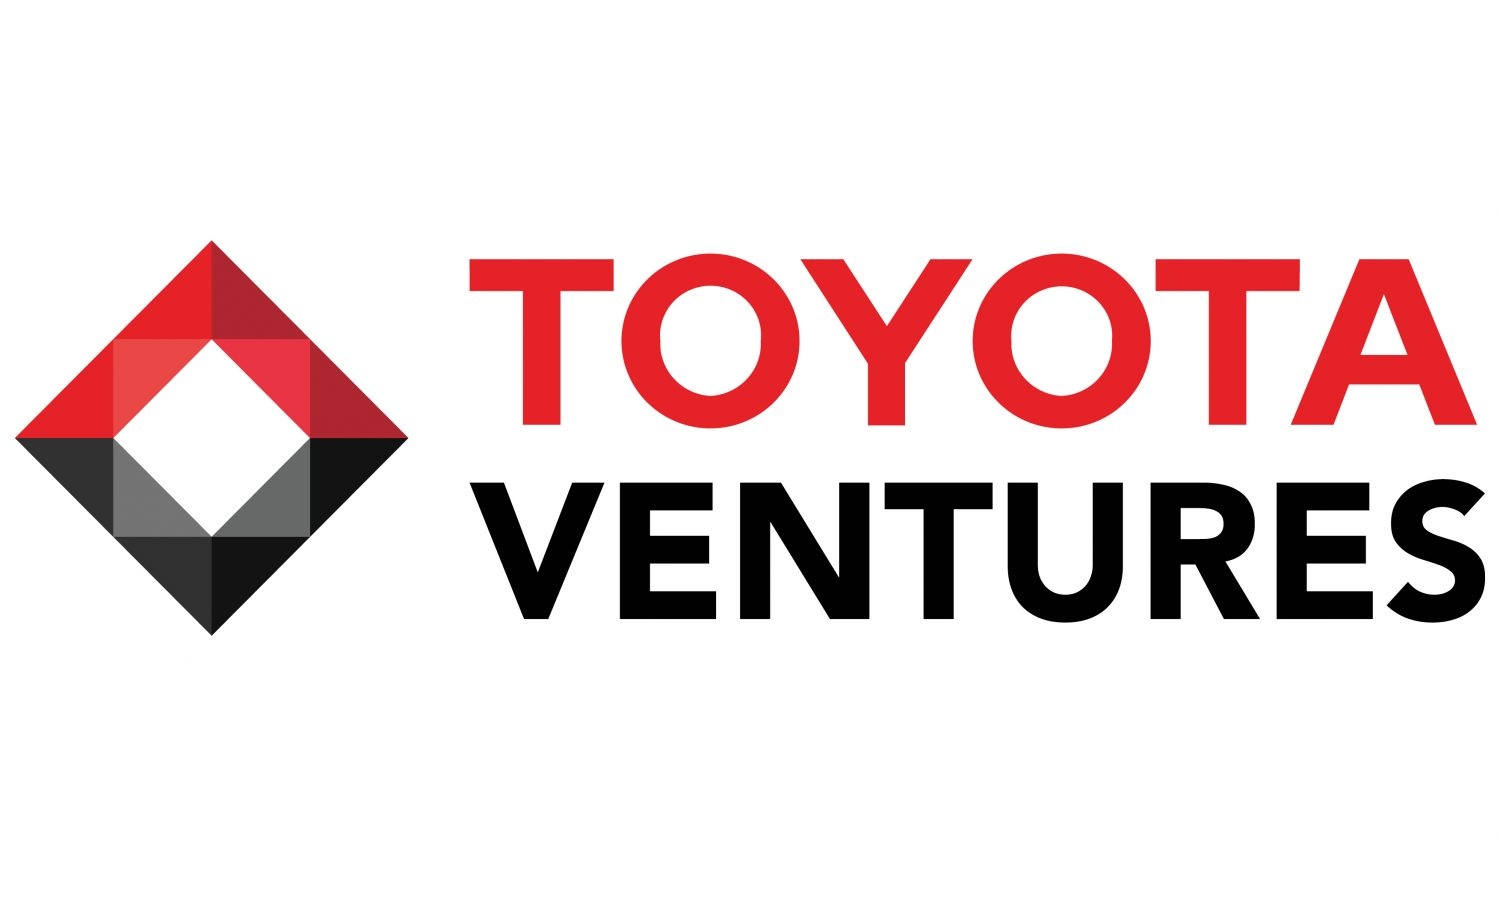 Toyota AI Ventures announces rebrand as Toyota Ventures and an additional $300M to invest in emerging technologies and carbon neutrality